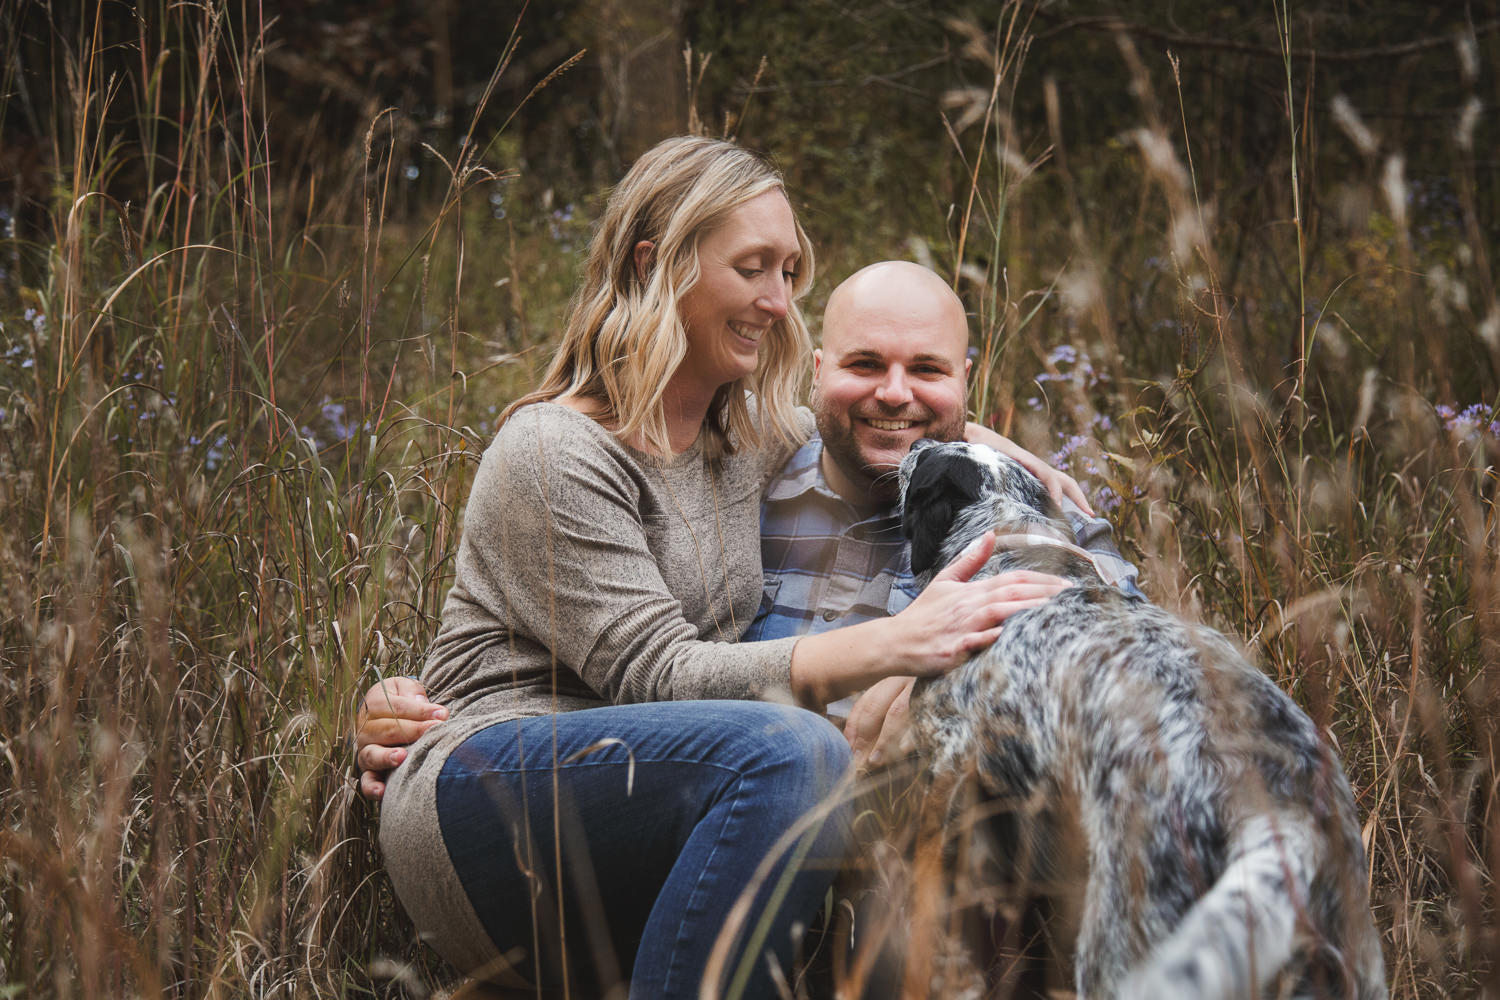 an engagement session in the woods near St. Peter Mn with an adorable dog